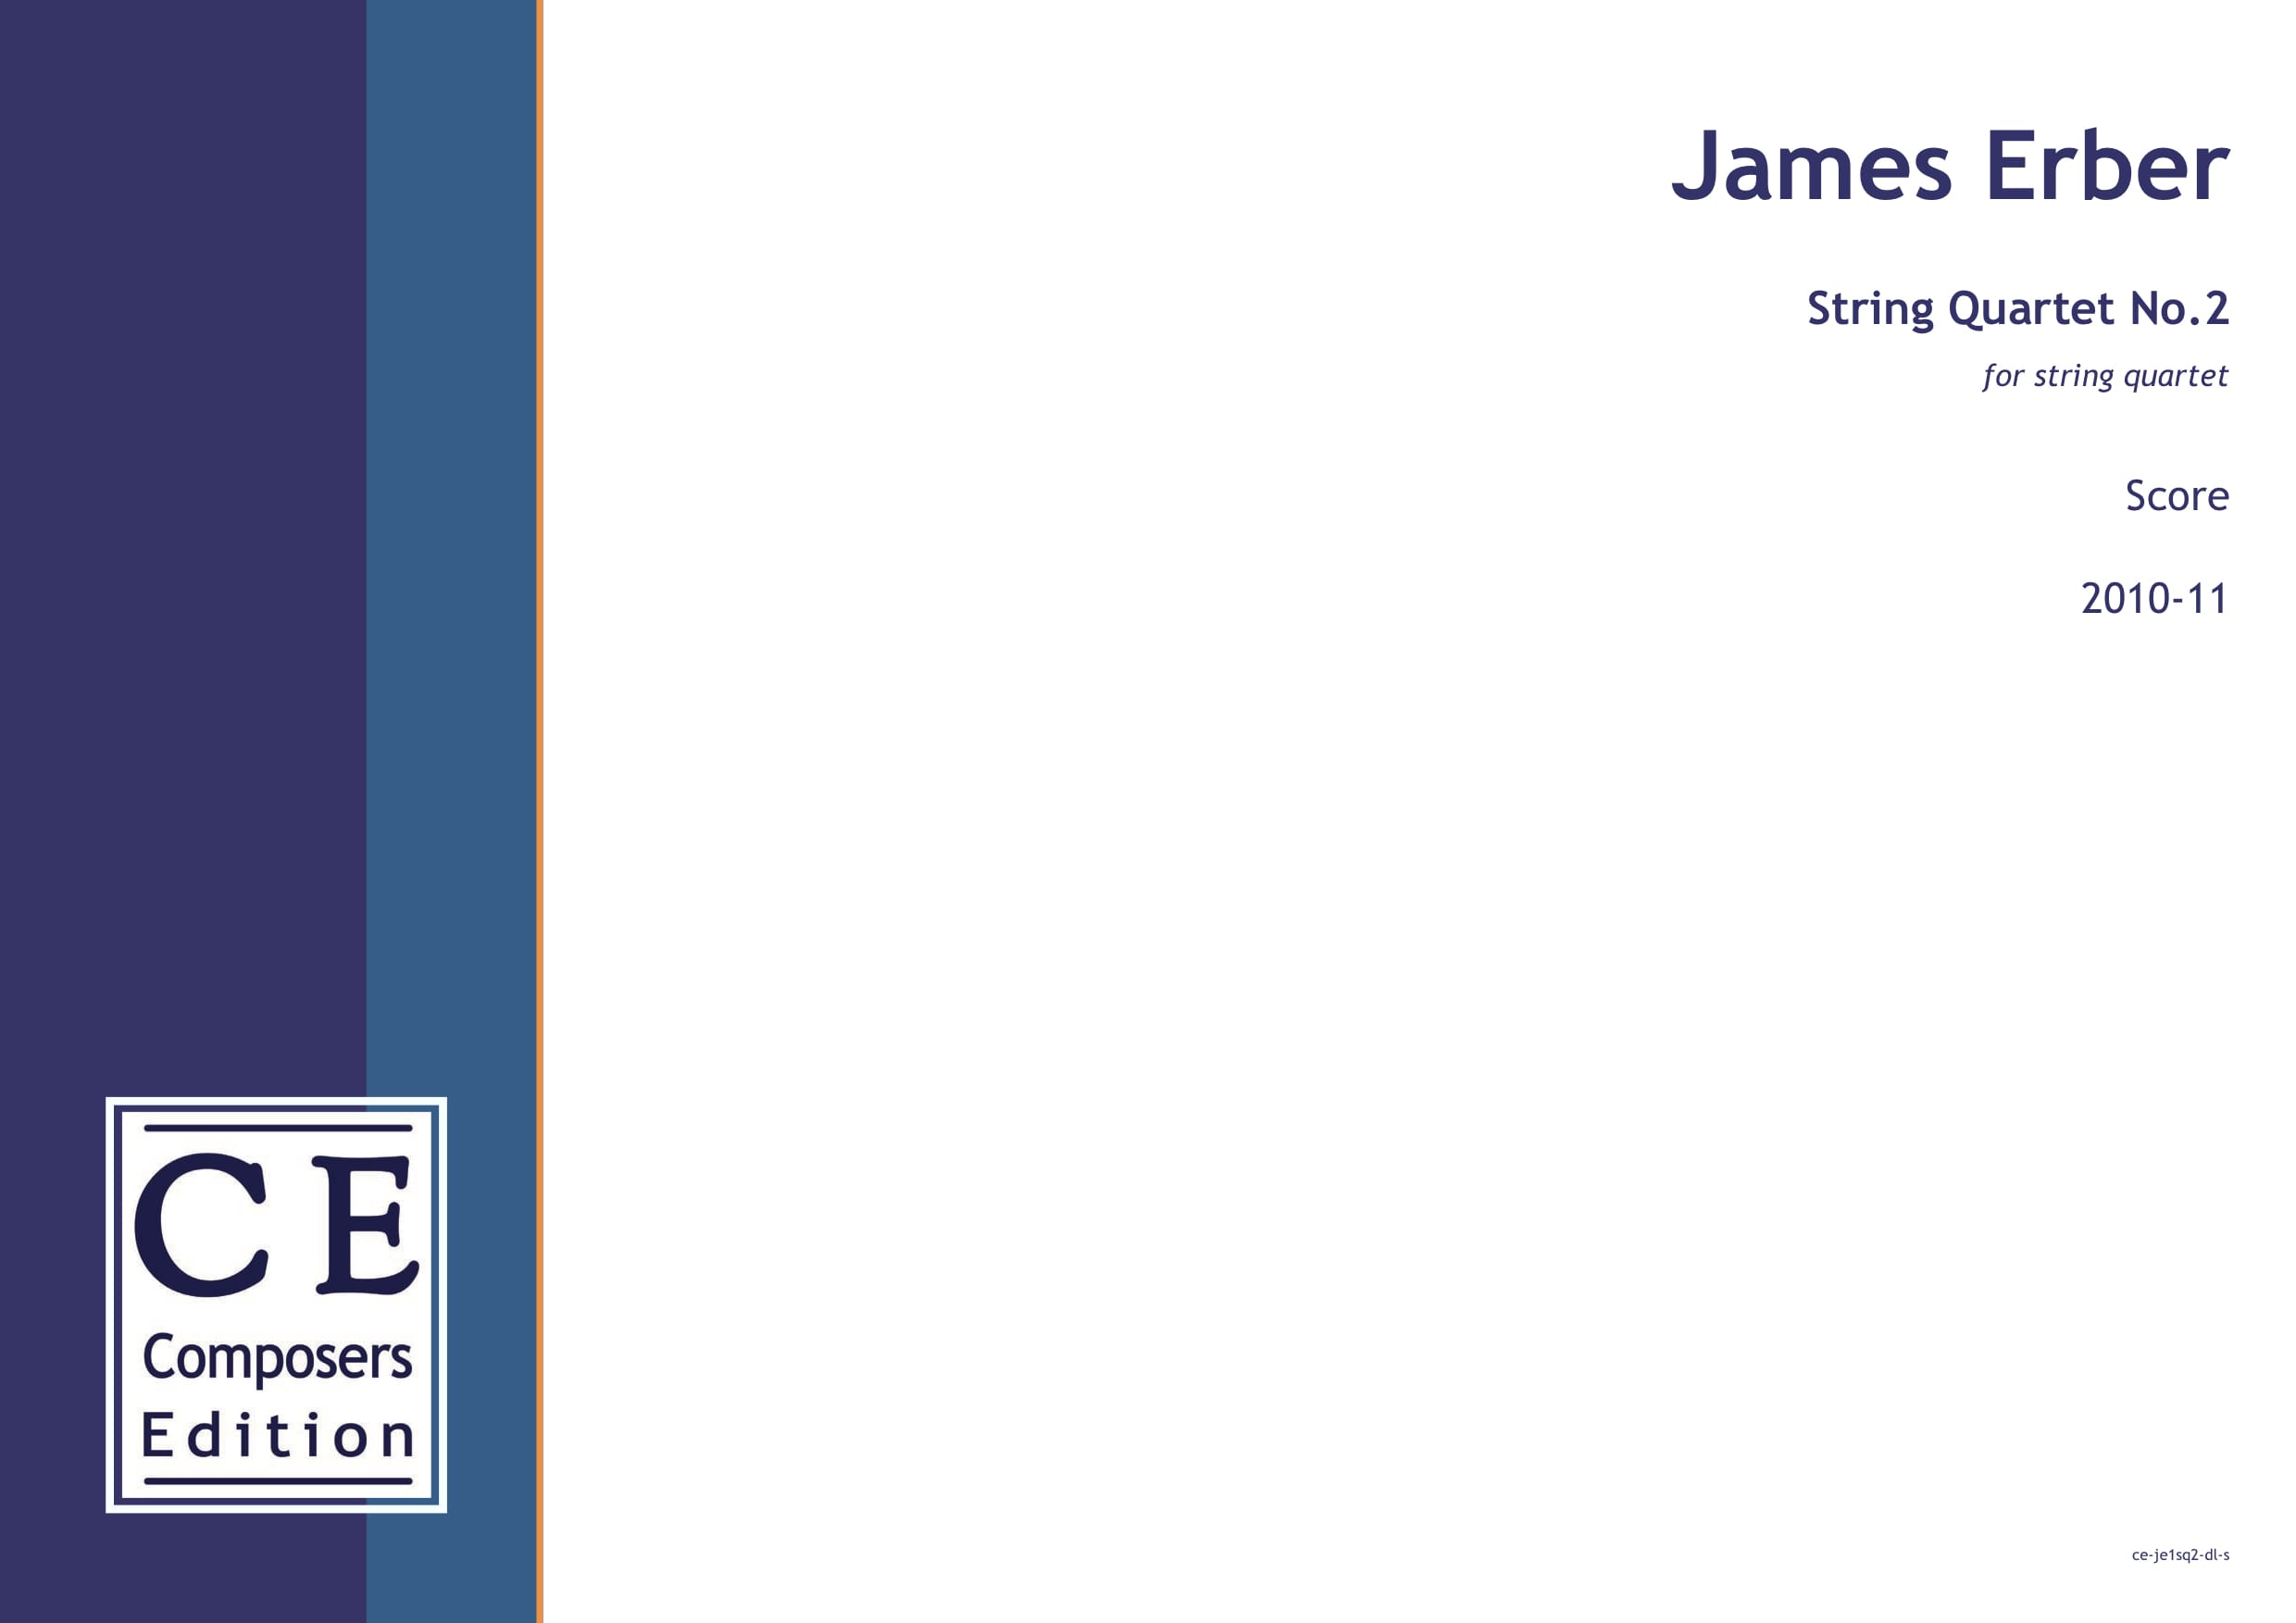 James Erber: String Quartet No.2 for string quartet